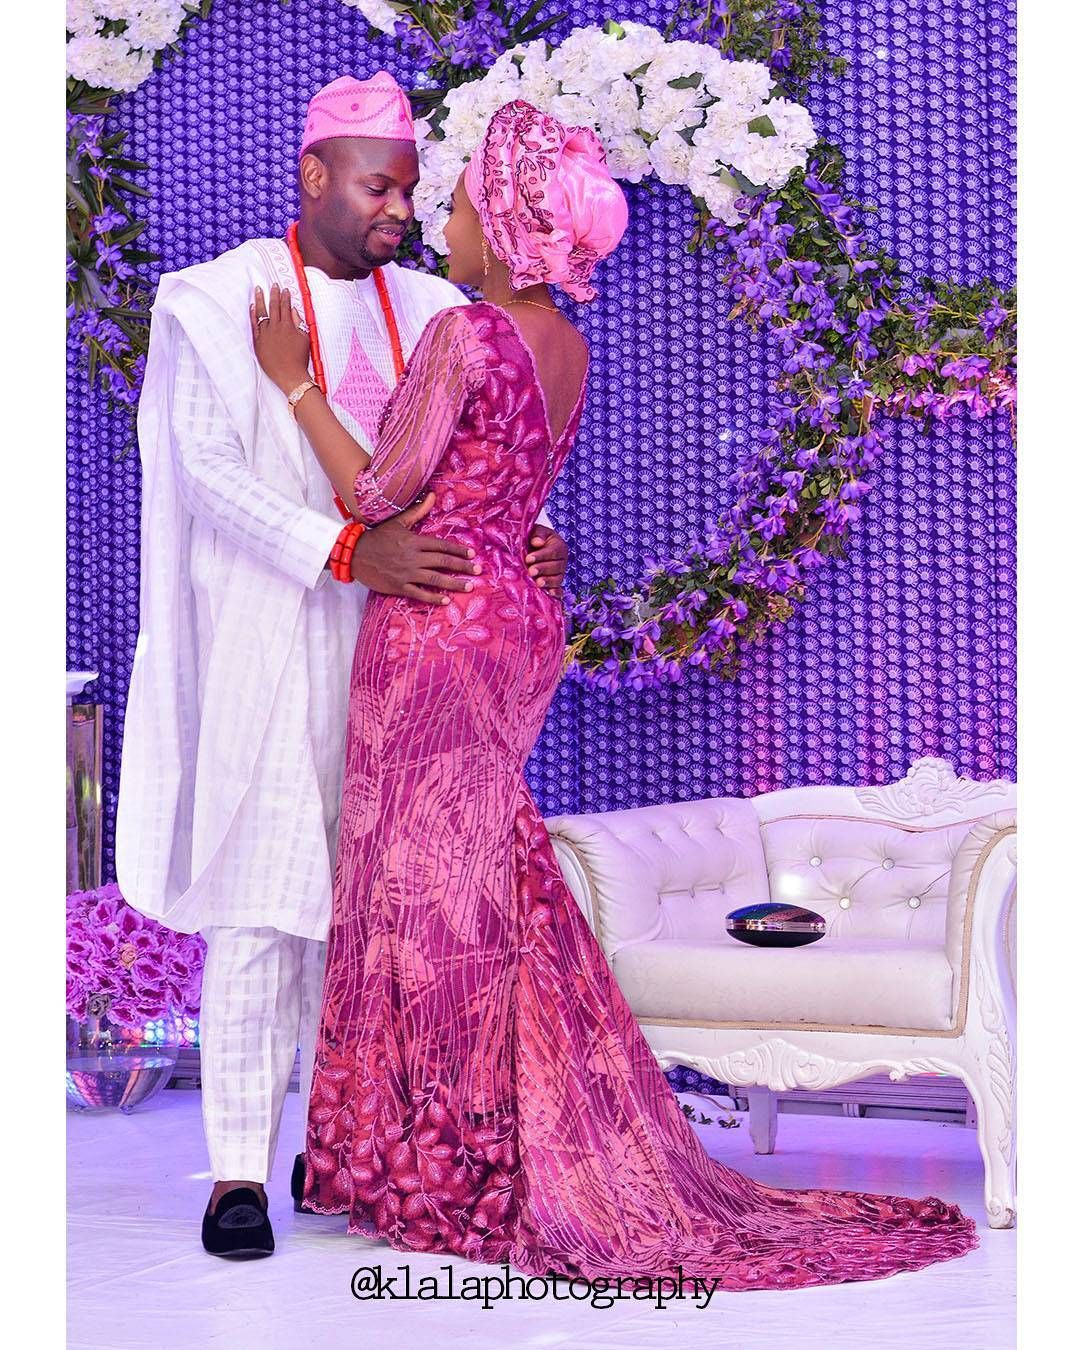 Pin de Gidi Wedding Nigeria en Gidiweddings Photo | Pinterest